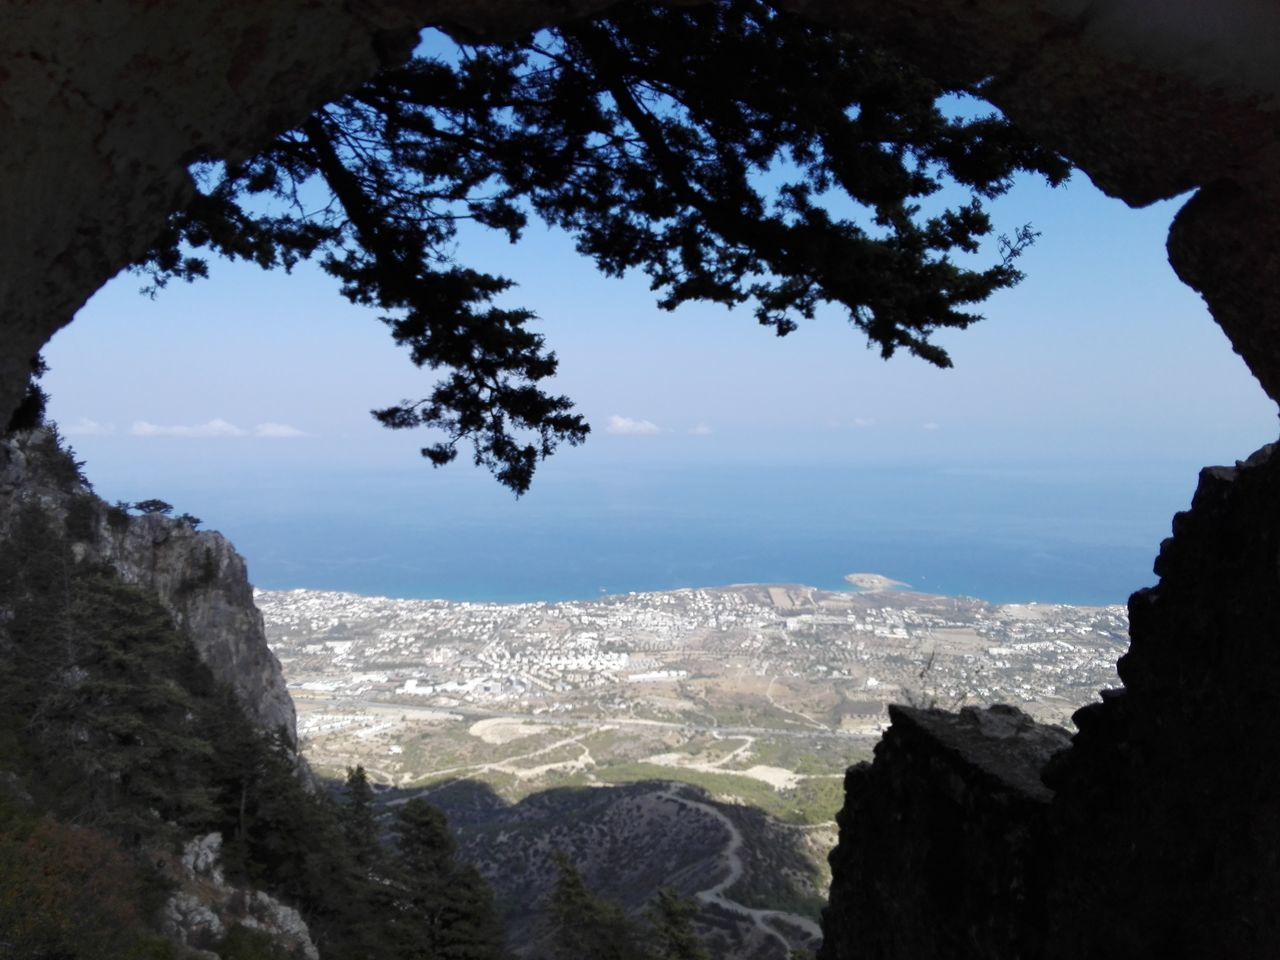 Beauty In Nature Kyrenia Landscape Mountain Mountain Range Nature Night No People Outdoors Scenics Sky St. Hillarion Castle Travel Destinations Tree